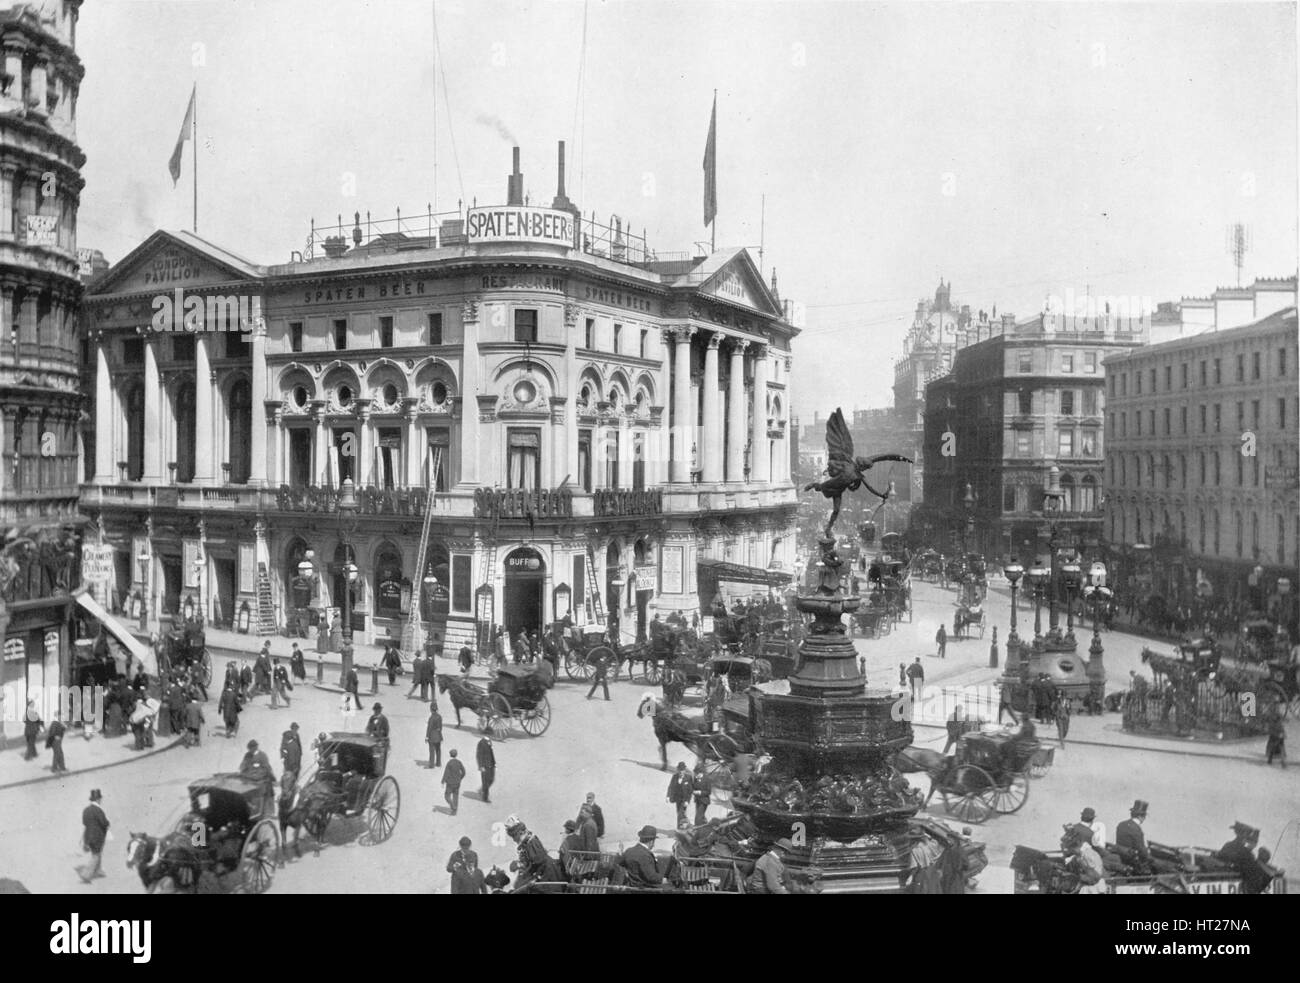 Piccadilly Circus, Westminster, London, c1910 (1911). Artist: Photochrom Co Ltd of London. - Stock Image